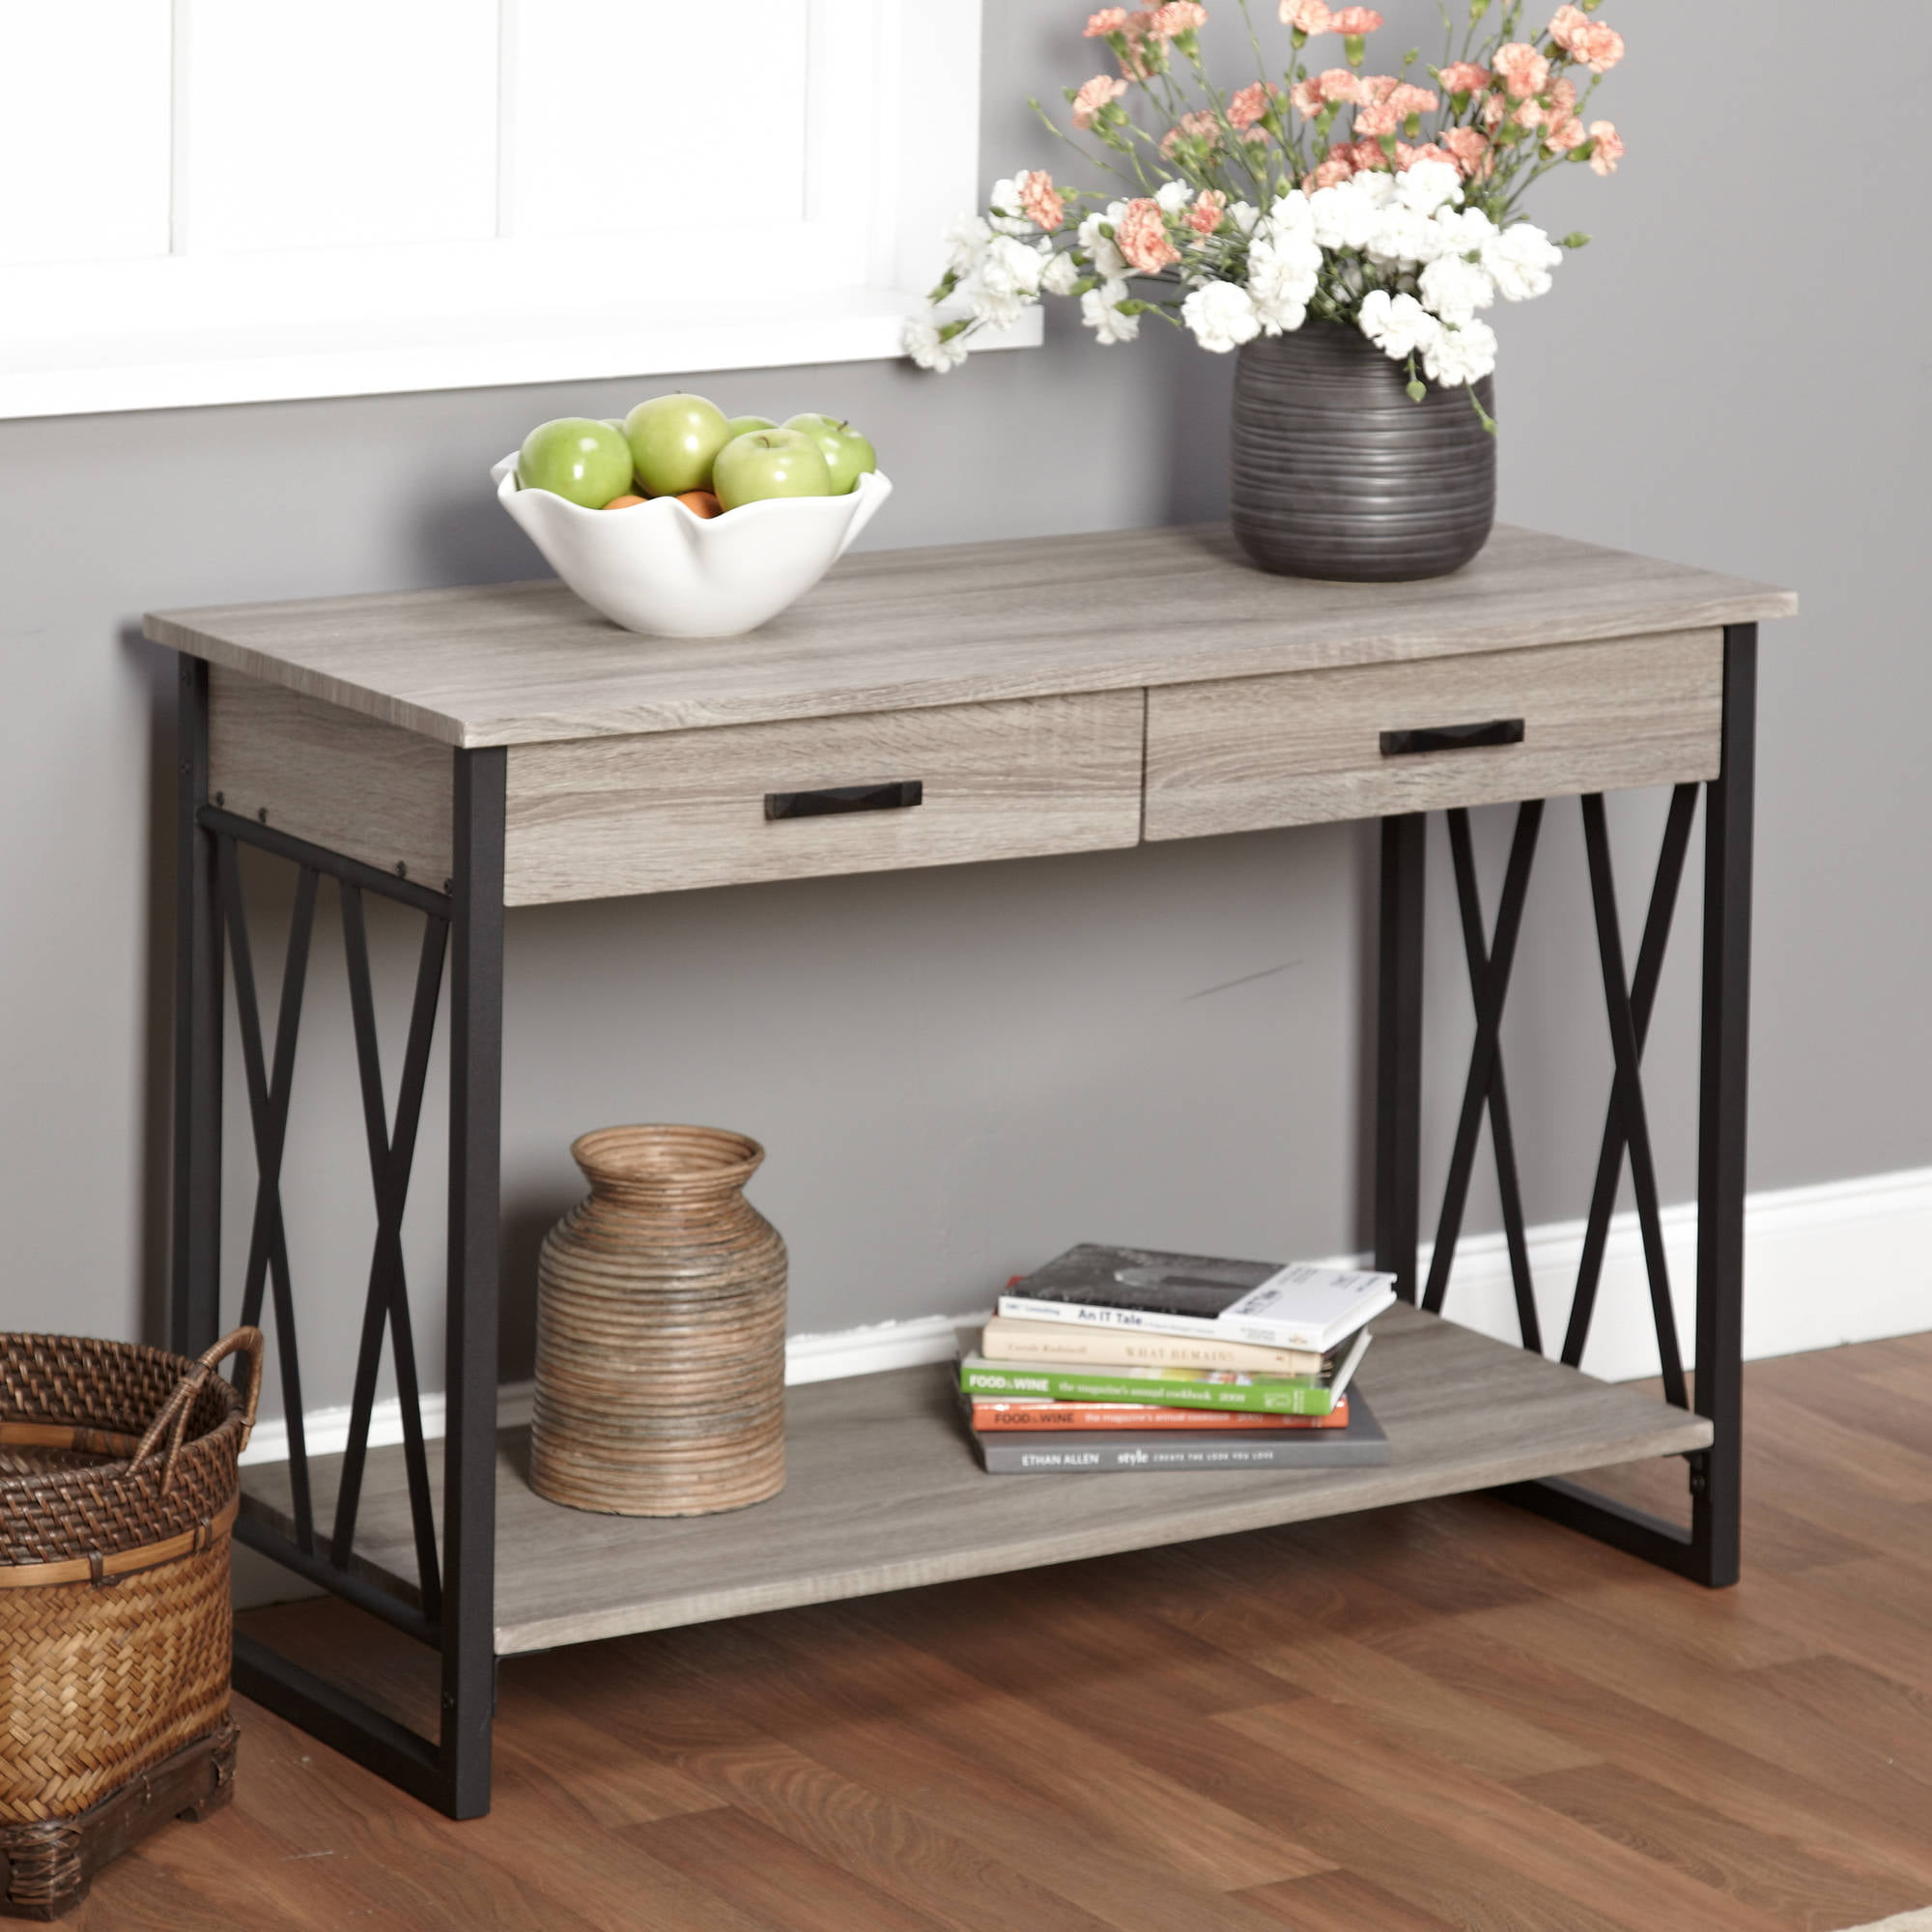 Jaxx Collection Sofa Table, Multiple Colors   Walmart.com